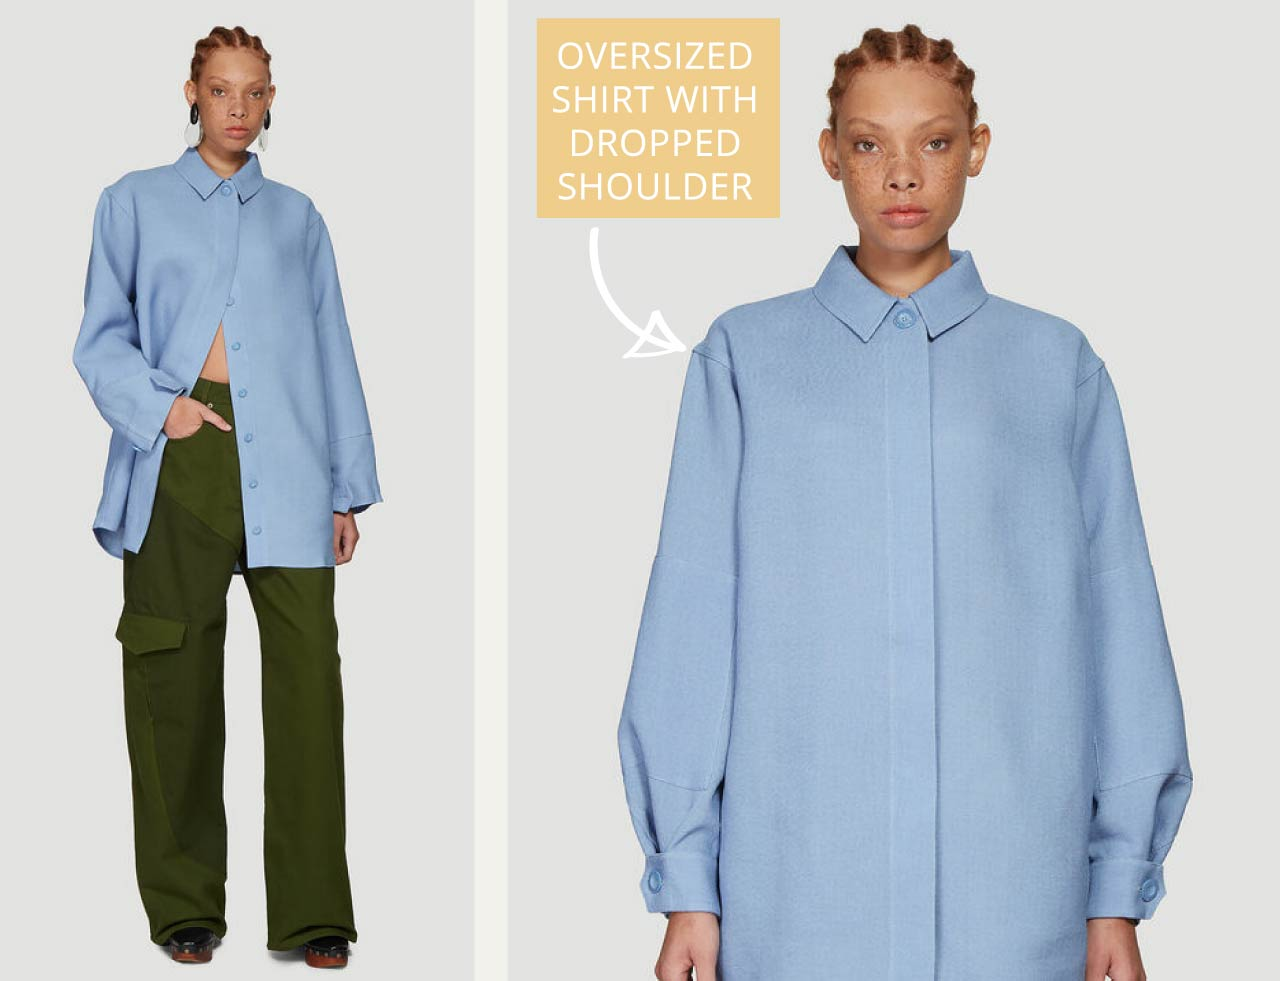 Details on Jacquemus Raw Silk Shirt | The Cutting Class. Jacquemus AW19 'La chemise Loya' with dropped shoulder.